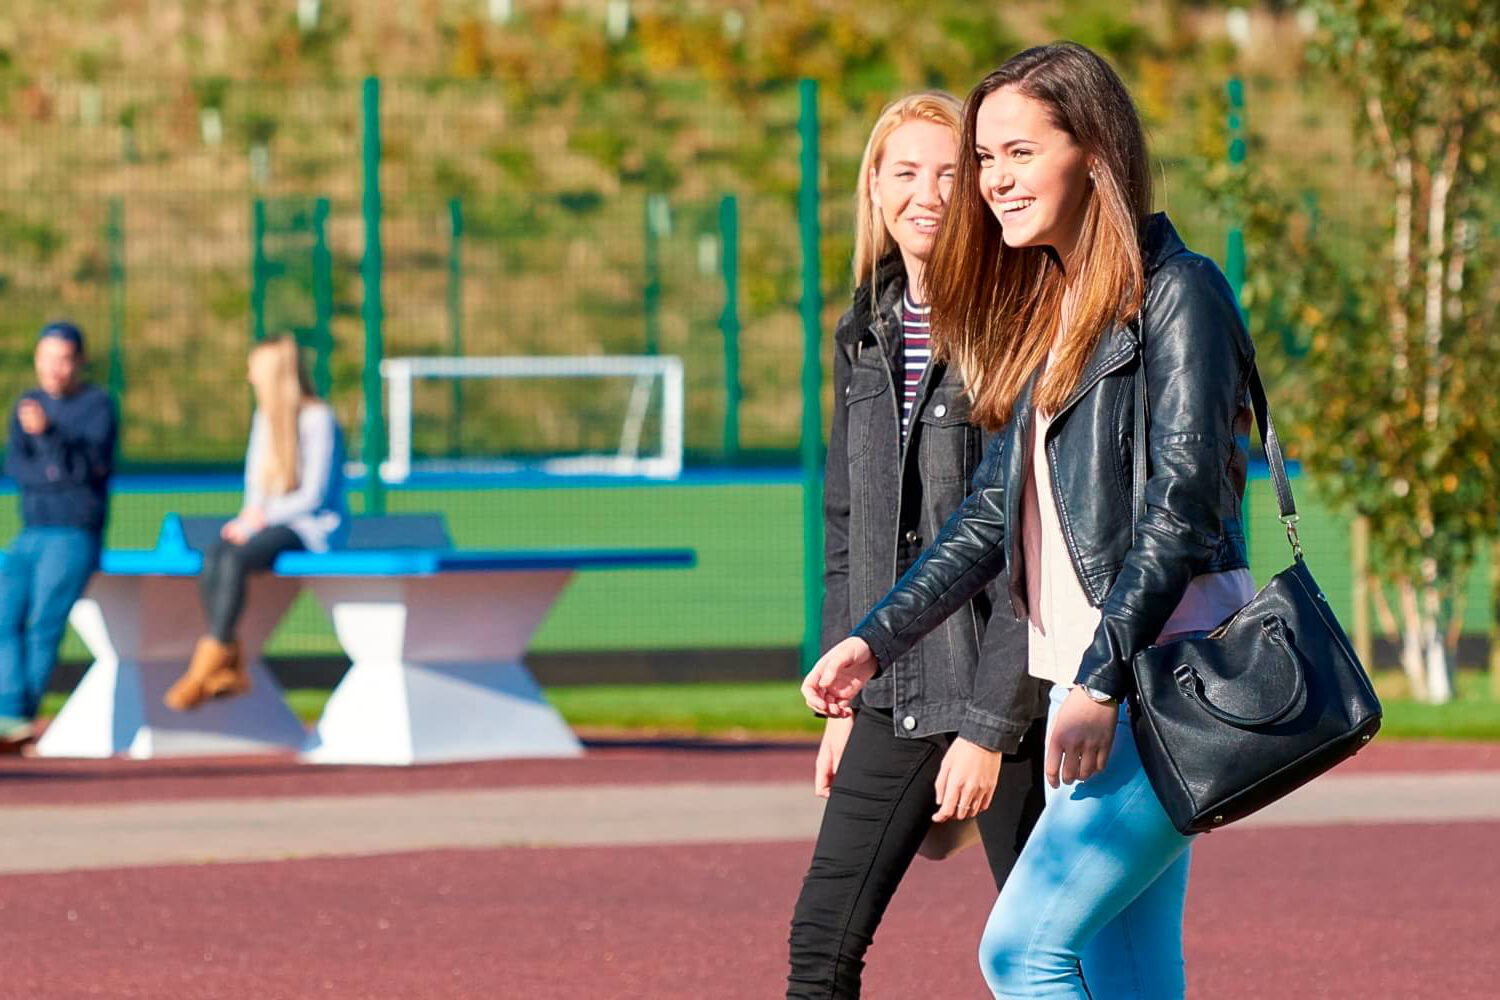 Two students walk past sports pitches and outdoor table tennis tables on campus.